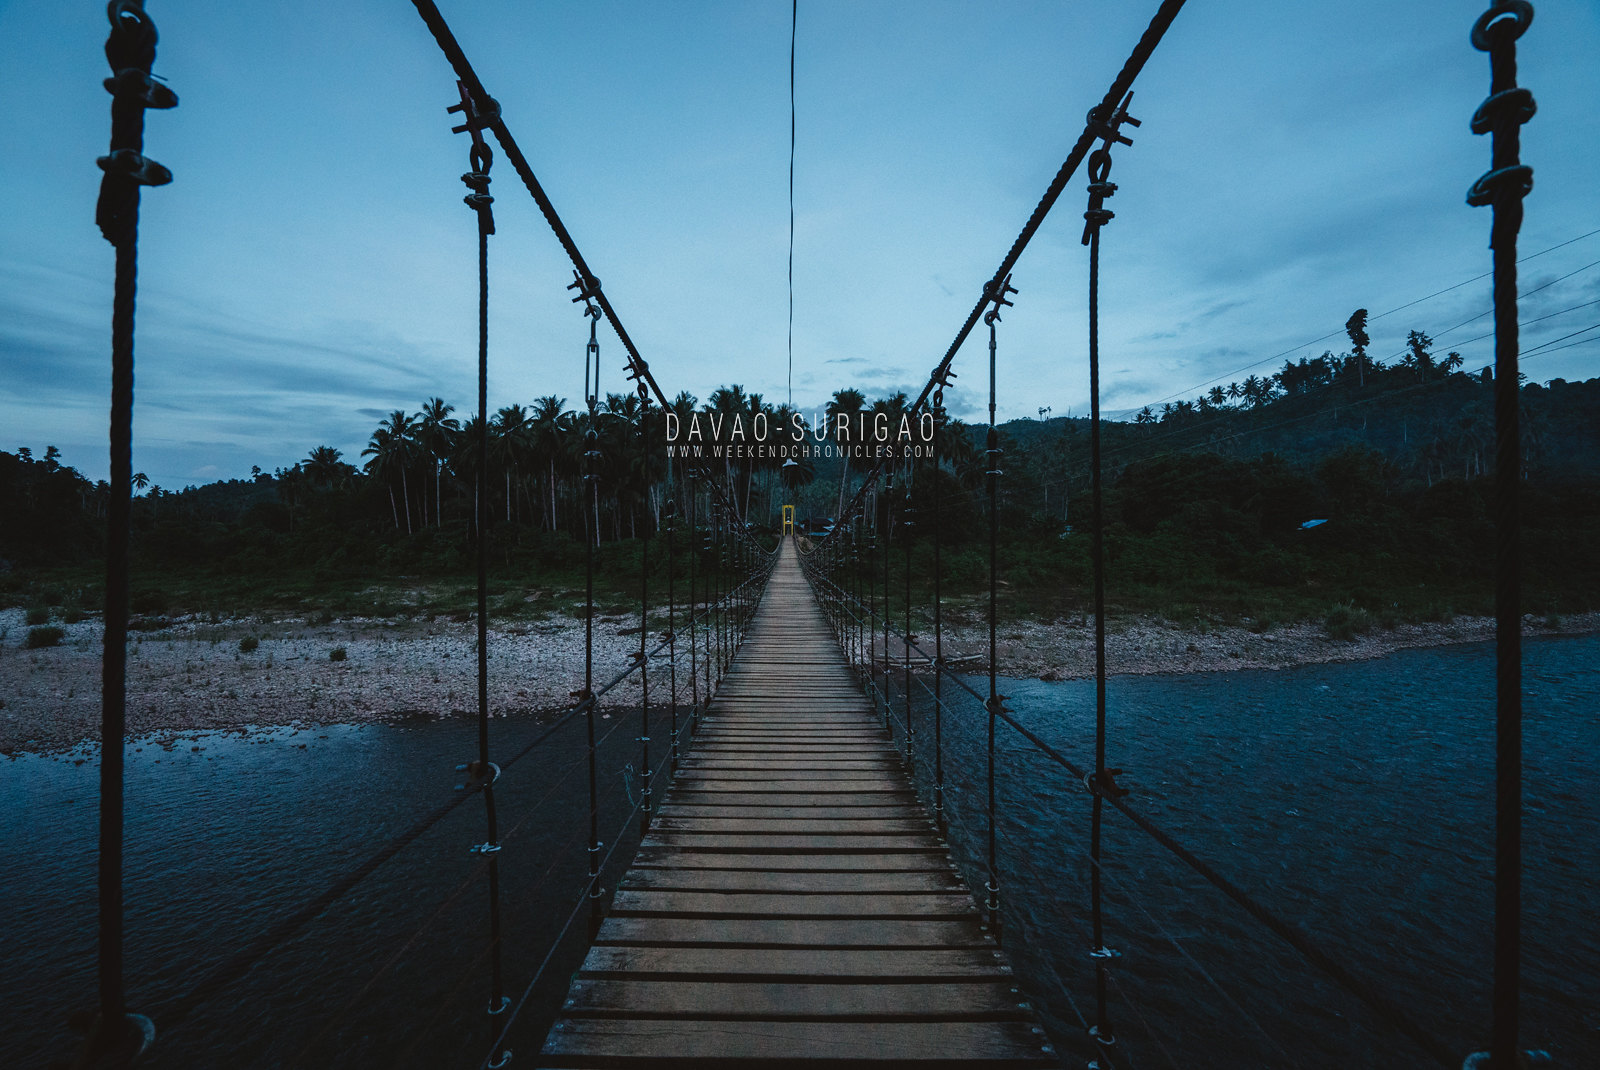 On our way back, we stopped by a hanging bridge which was destroyed by Typhoon Pablo before